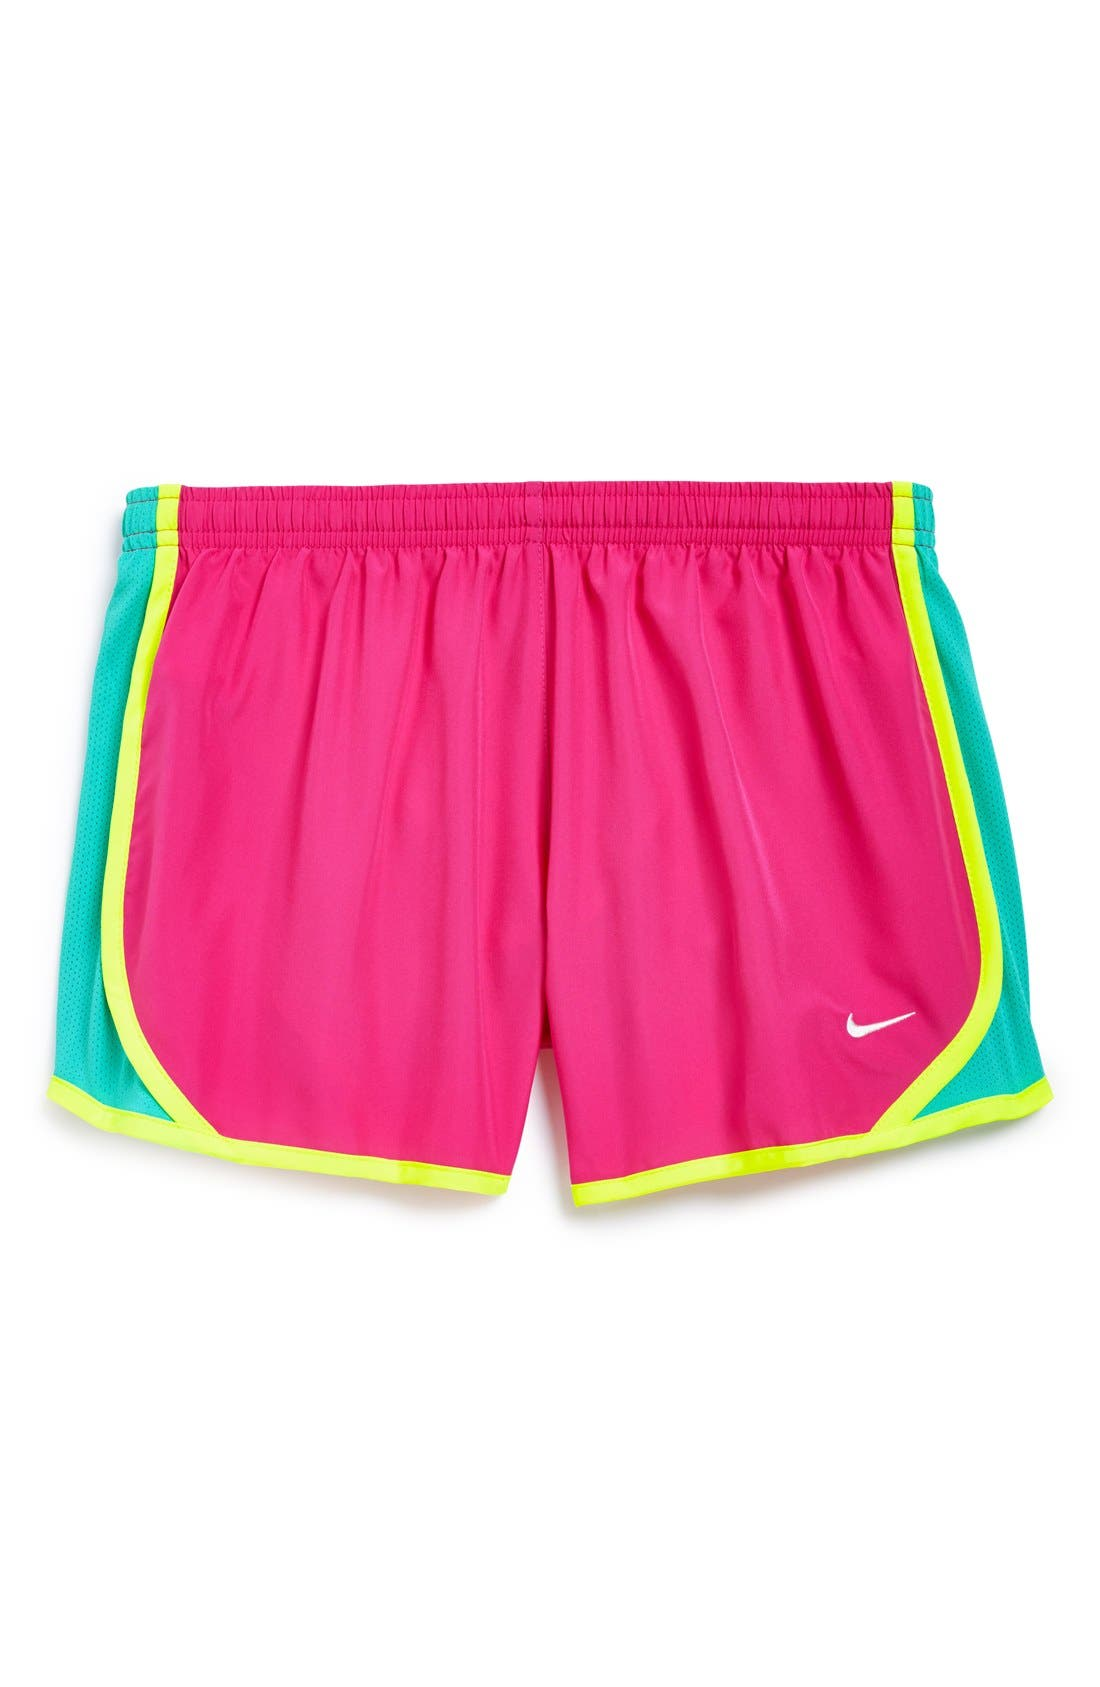 Alternate Image 1 Selected - Nike 'Tempo' Track Shorts (Big Girls)